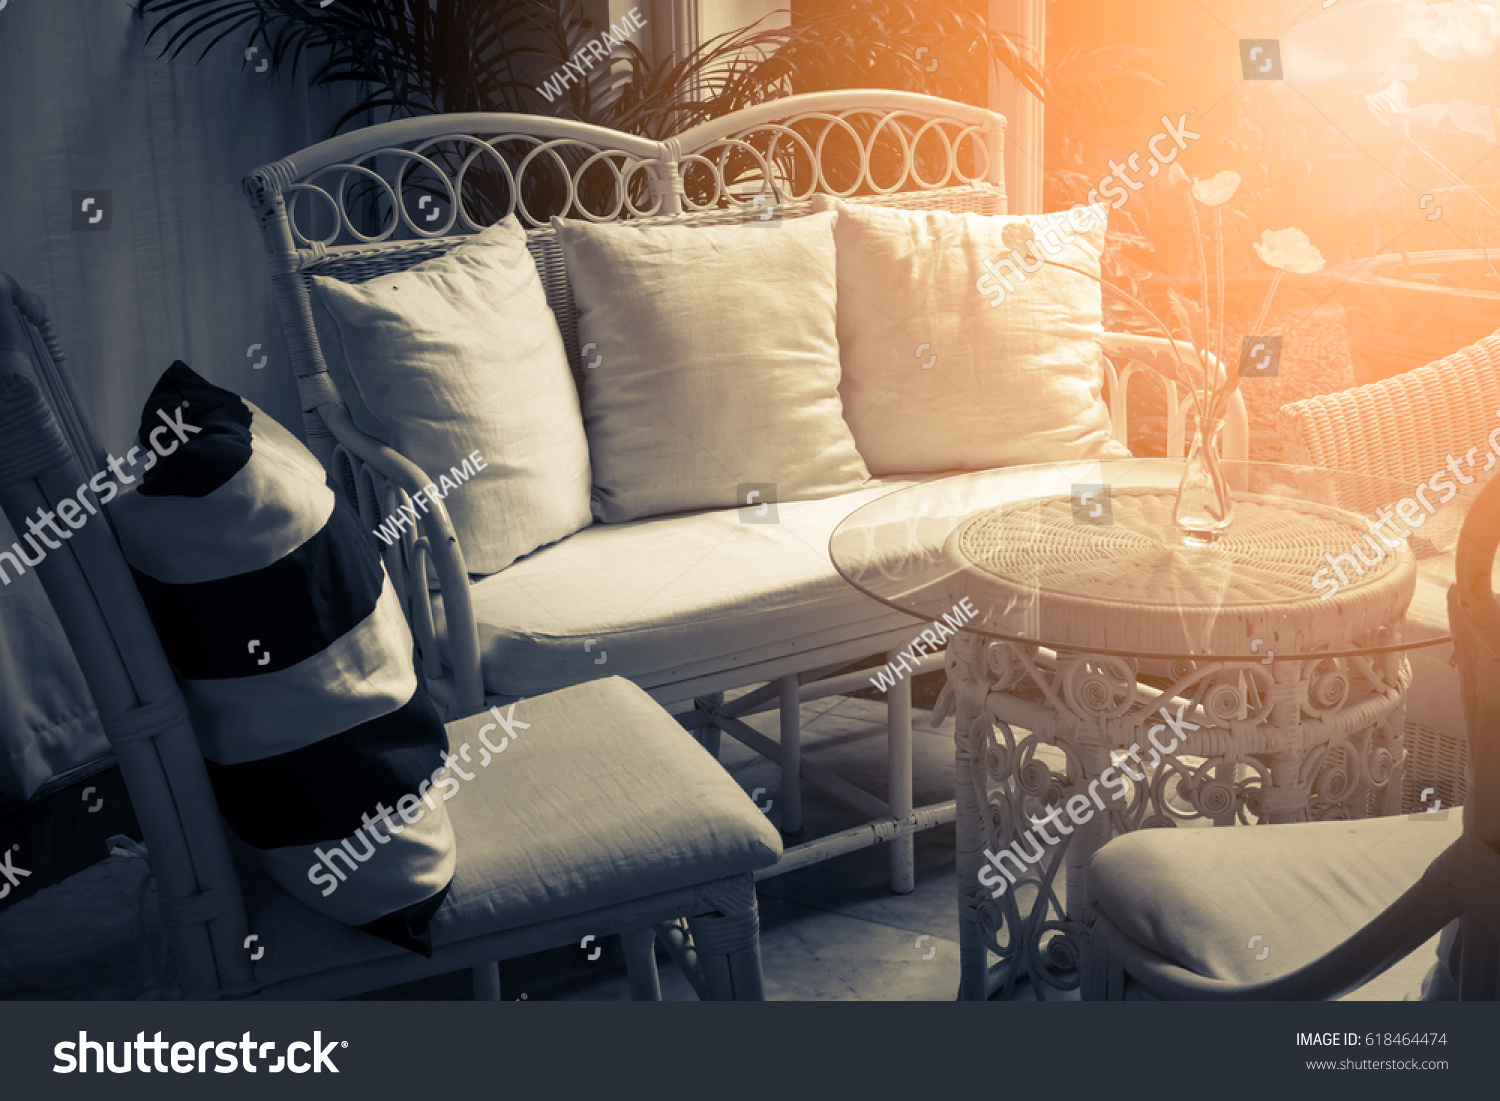 Furniture Lounge Group With Chairs Sofa And Table In A Patio With View Of  Garden Background